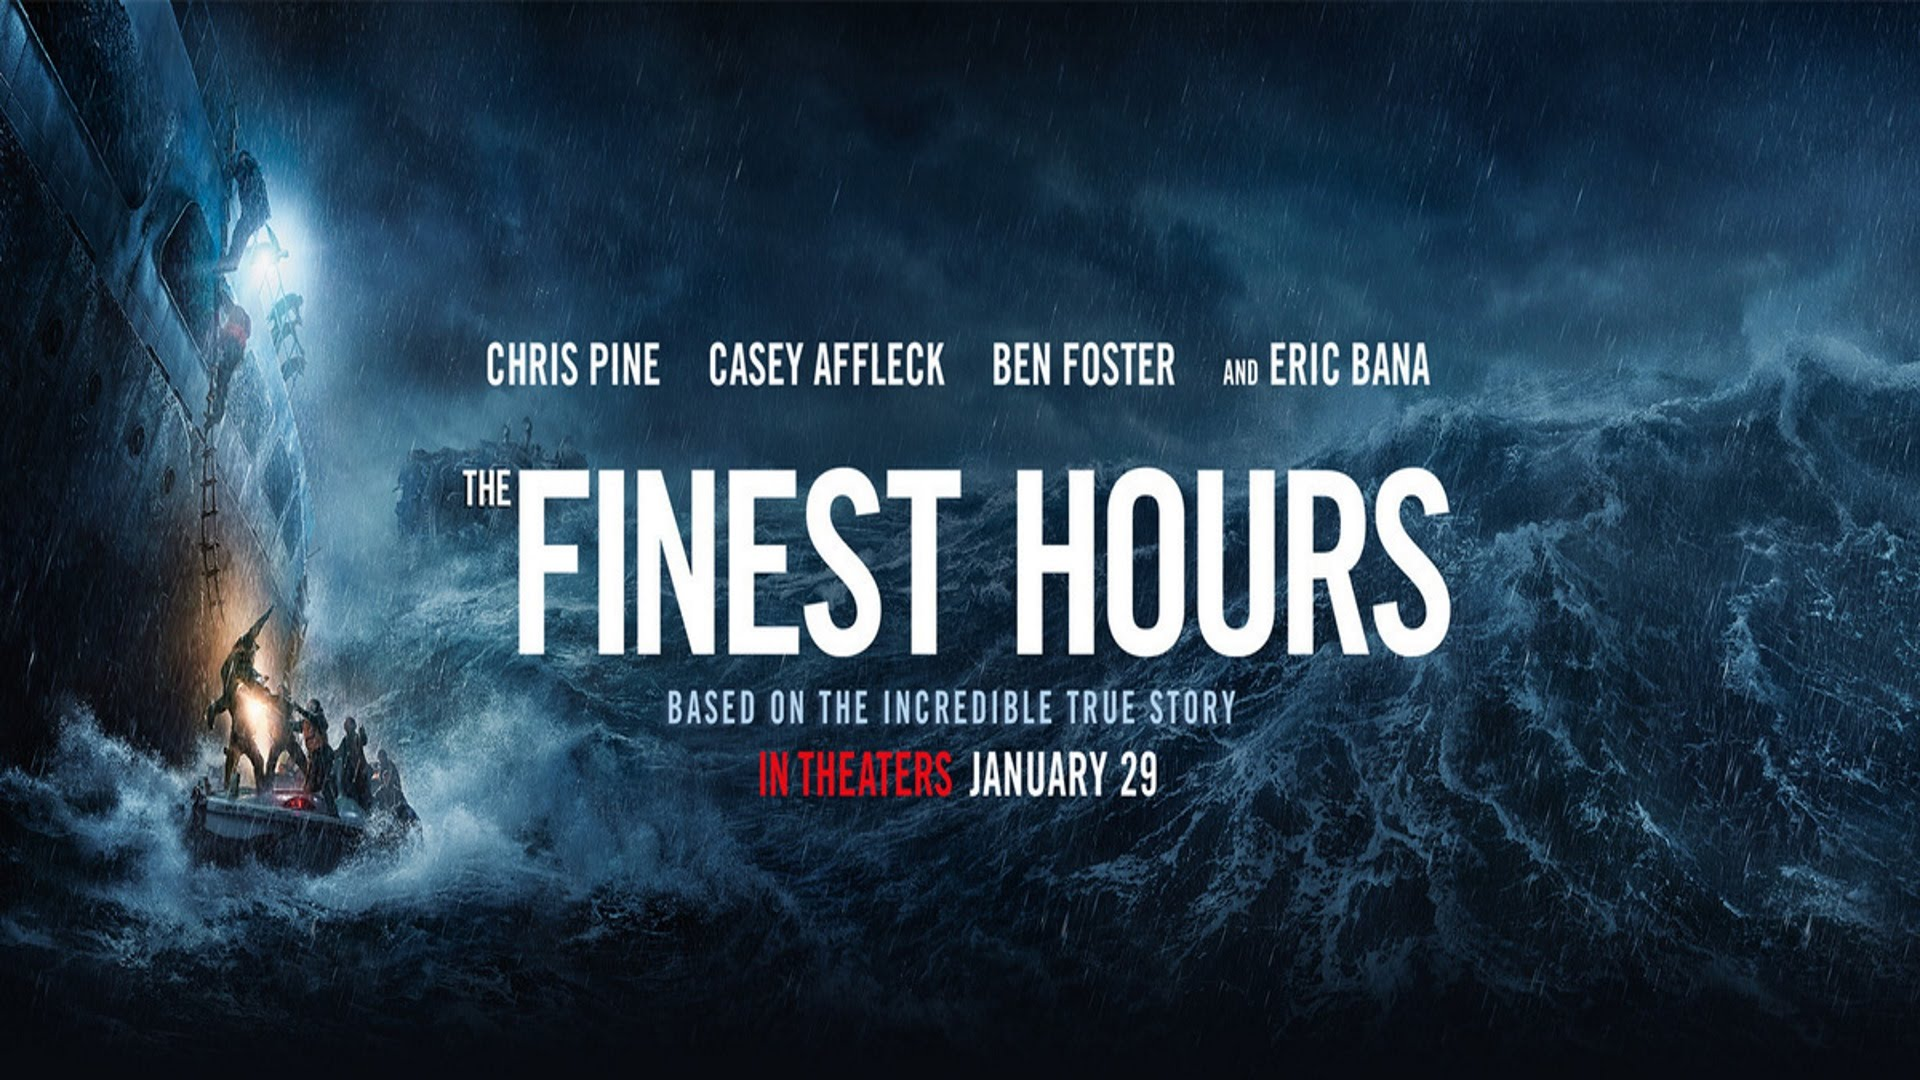 the finest hours movie wallpaper 62647